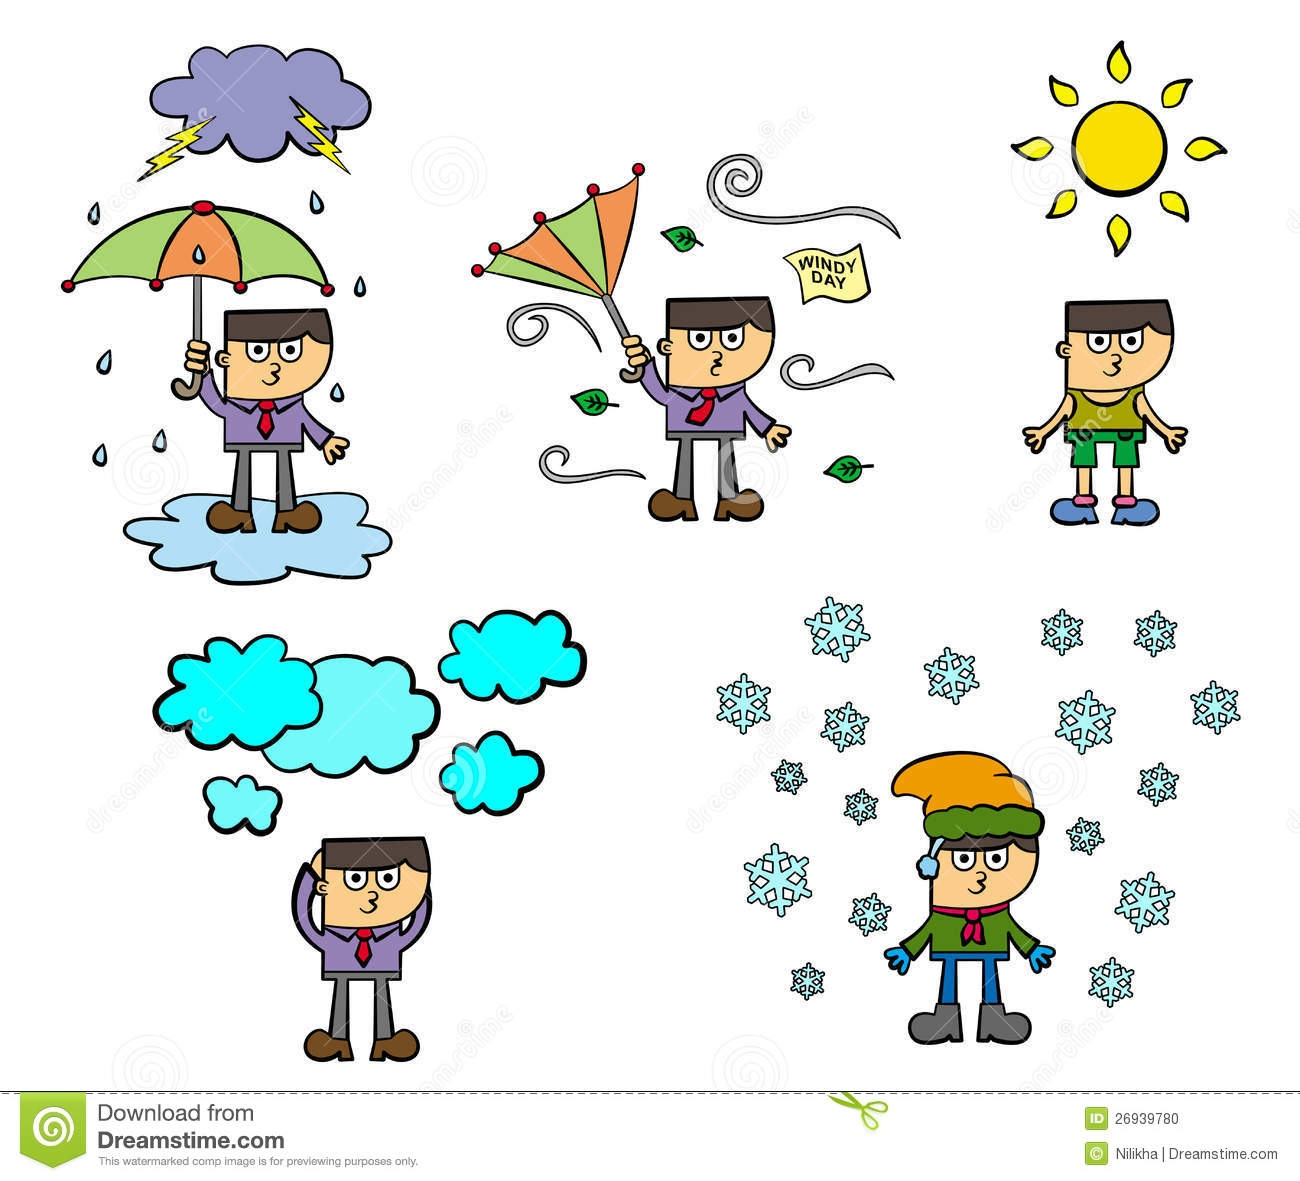 Kinds of weather clipart.